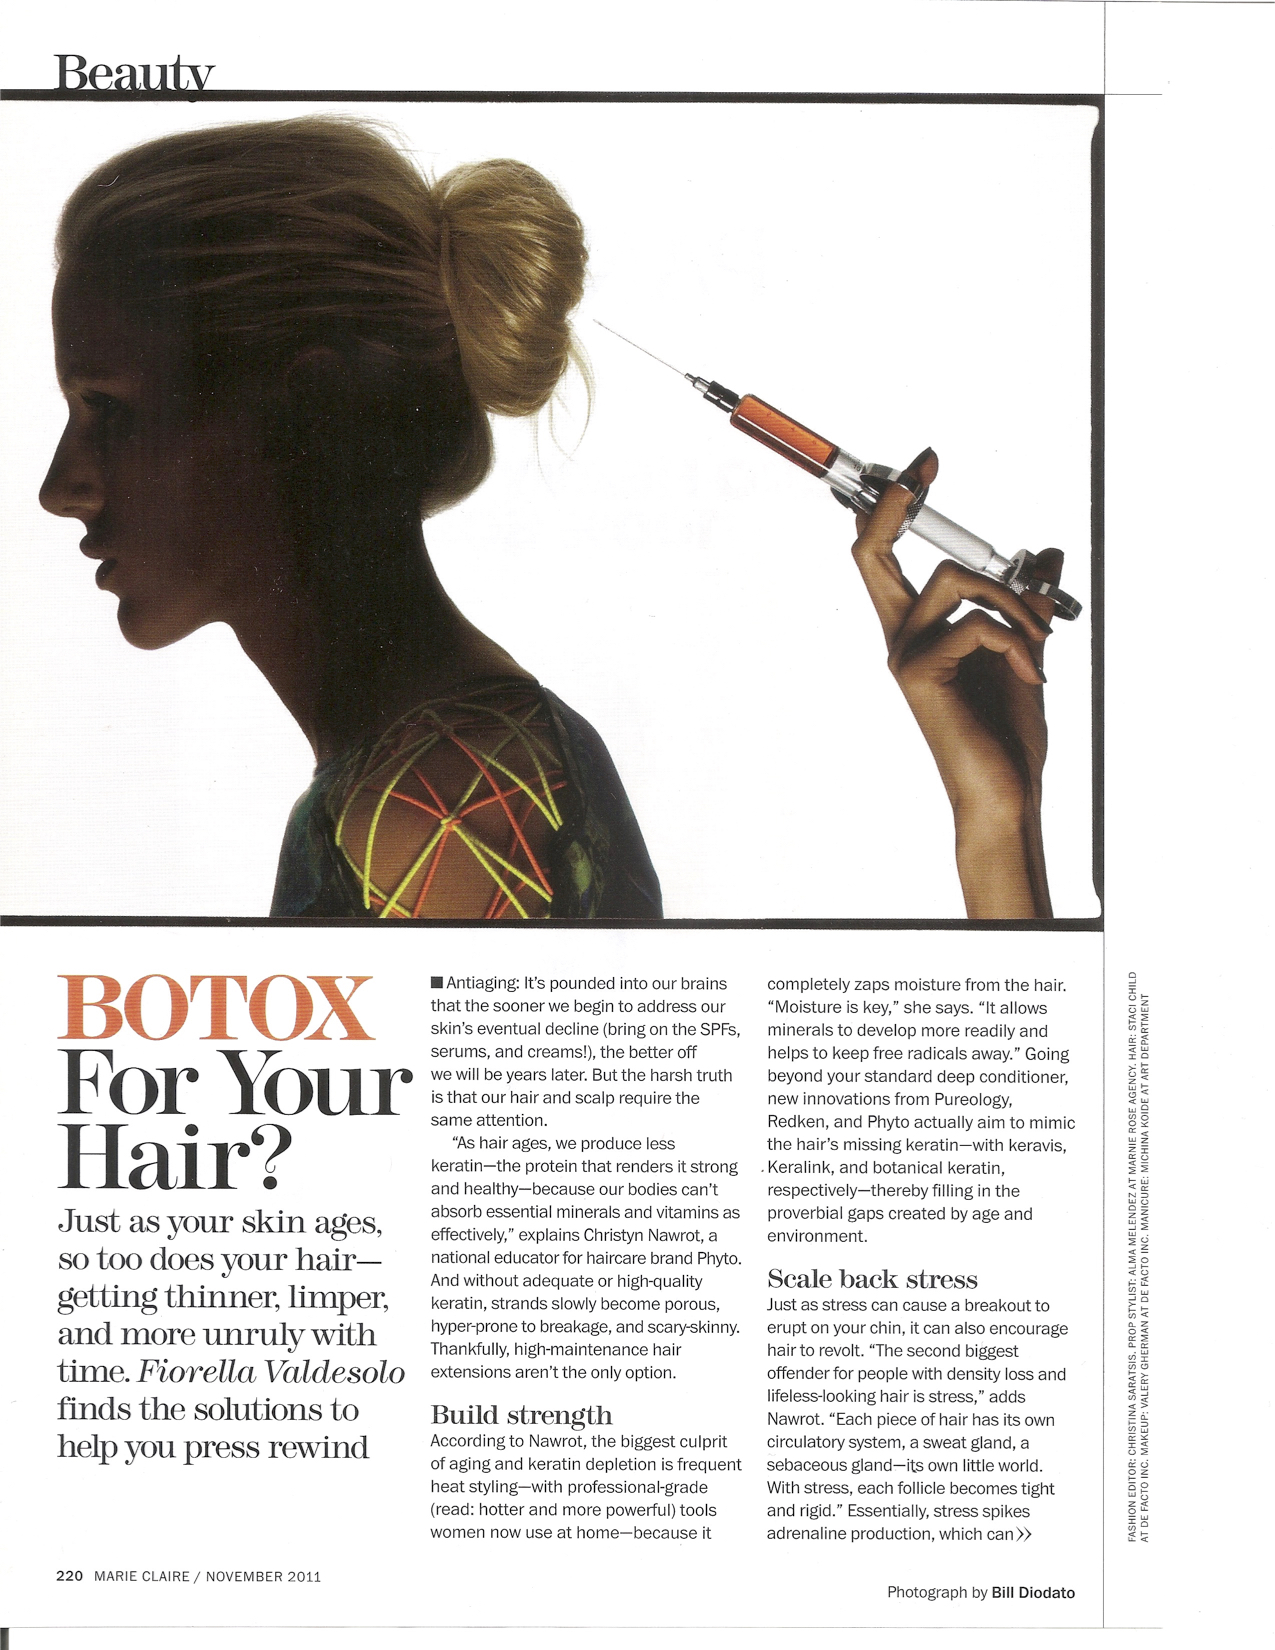 Marie Claire - Botox For Your Hair? pg1.jpg